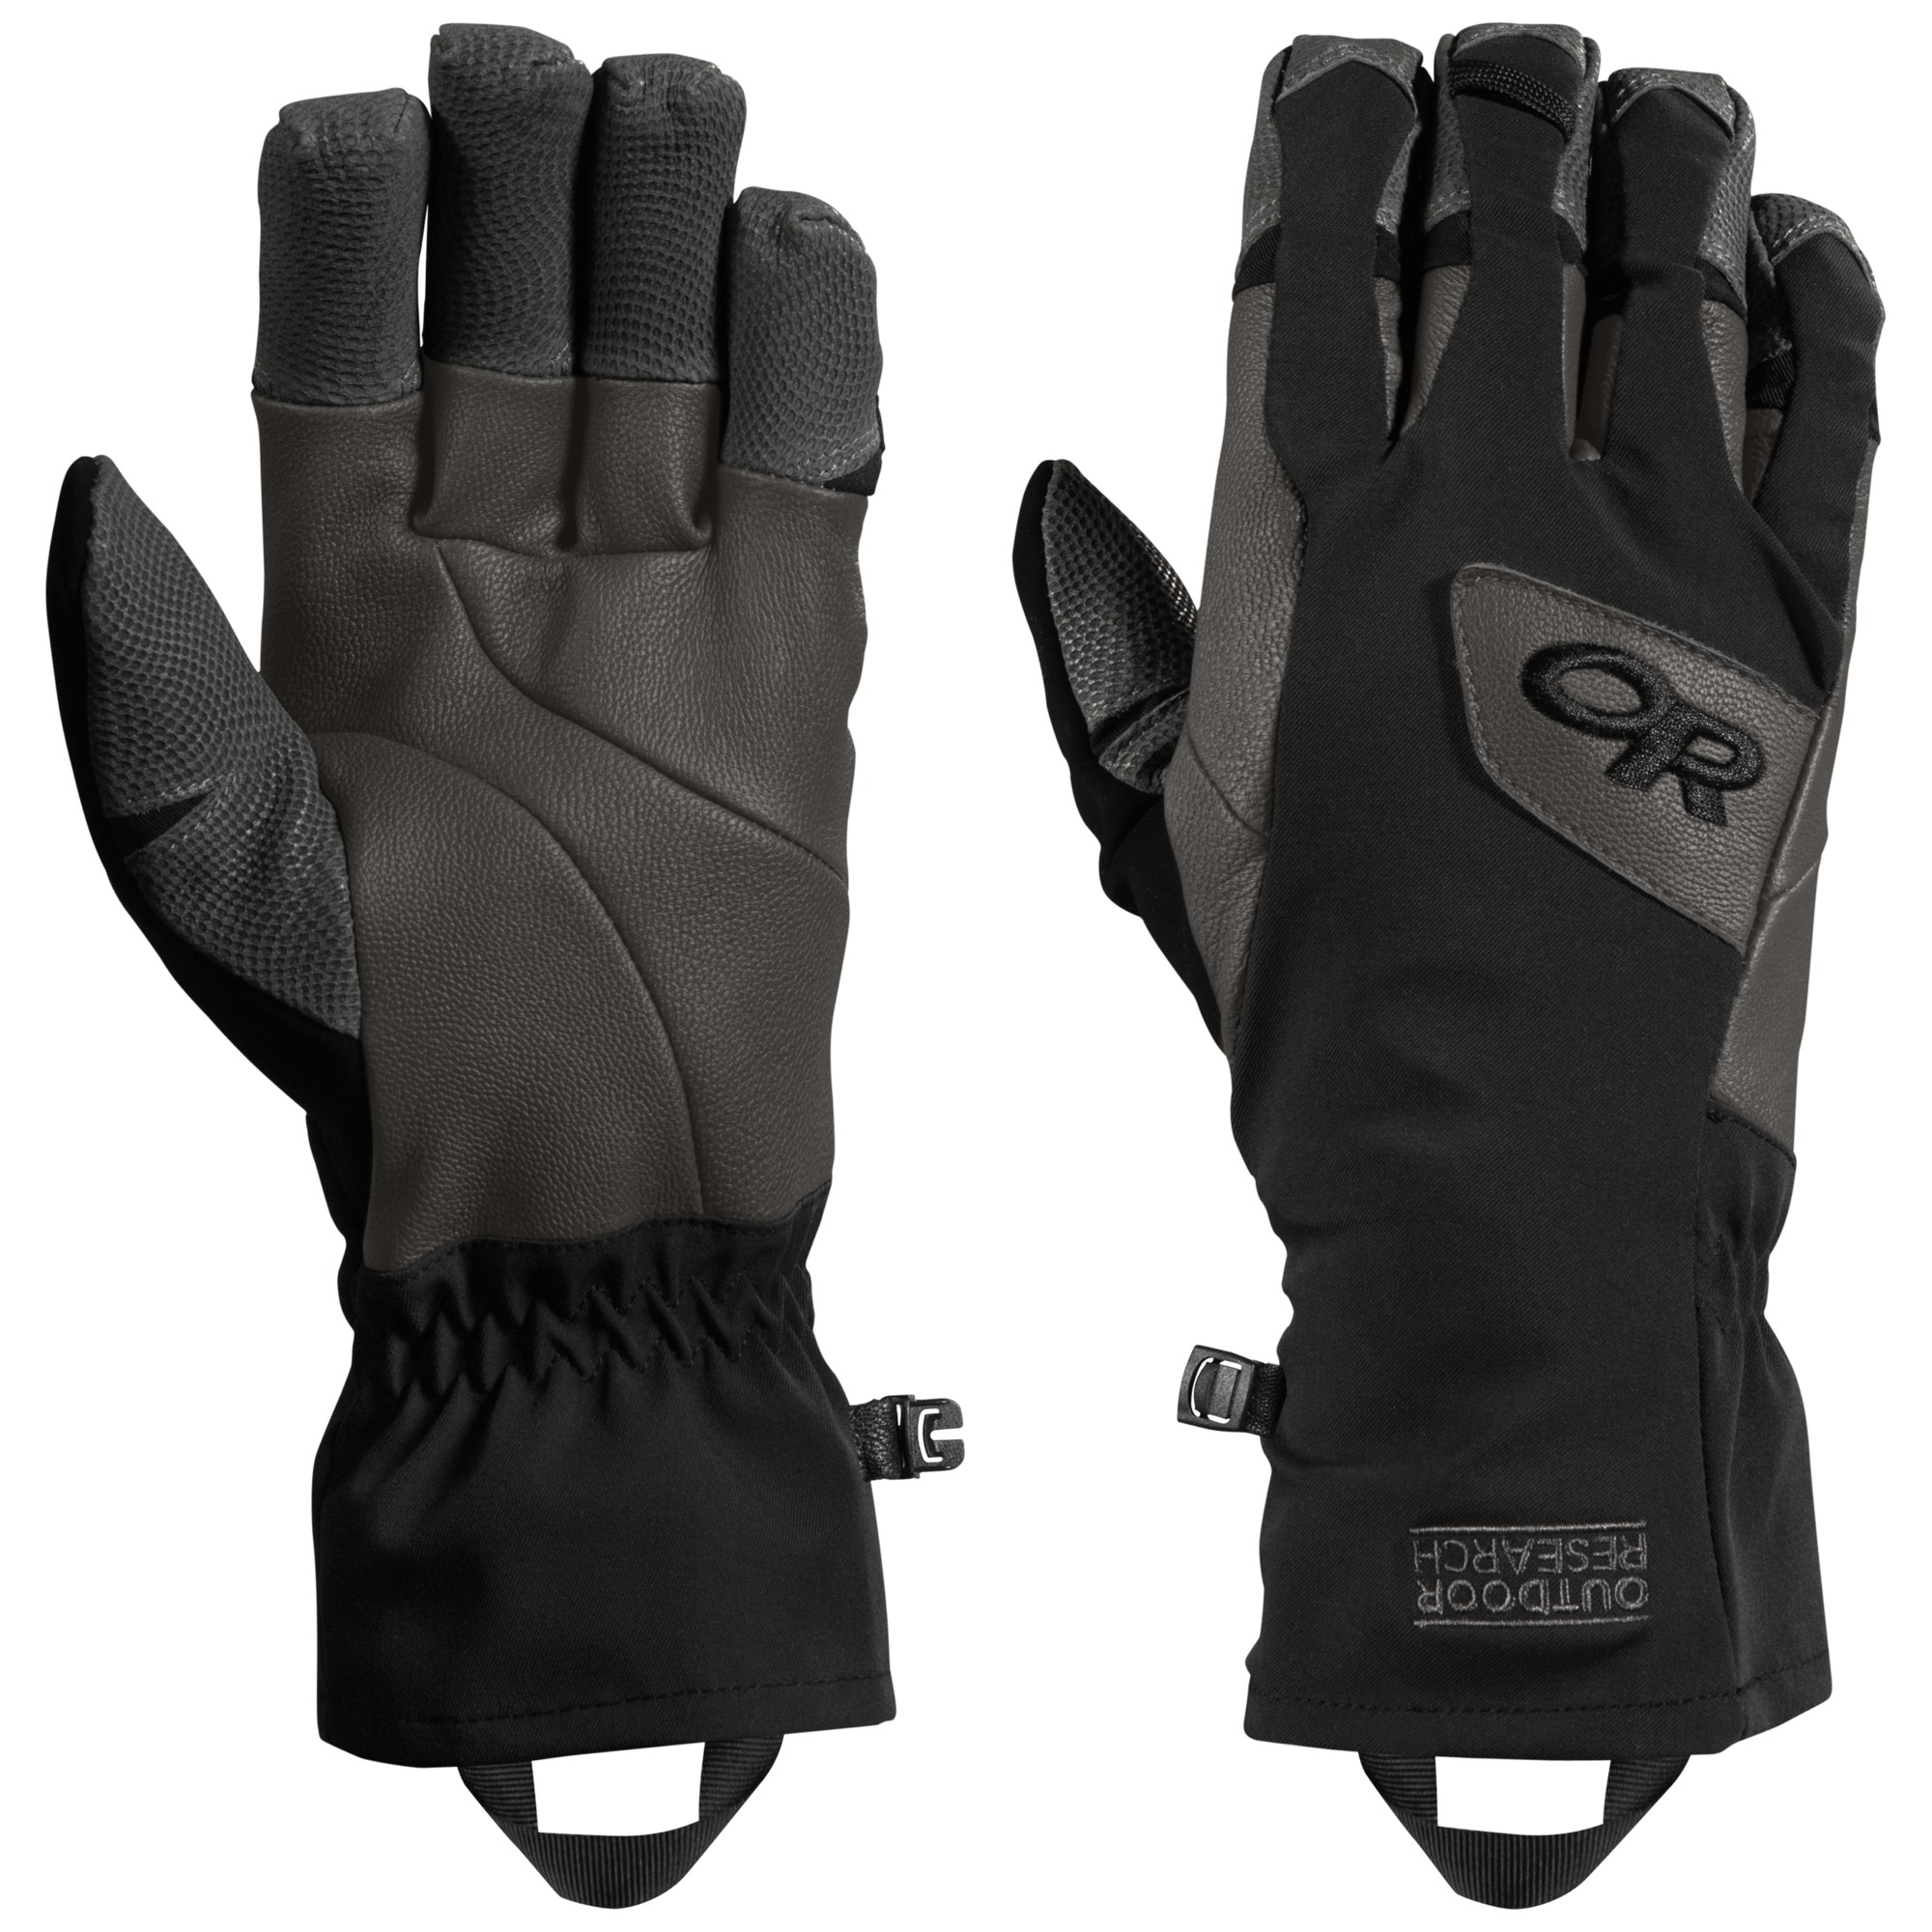 Outdoor Research Super Vert Gloves-black/charcoal-M - Gr. M